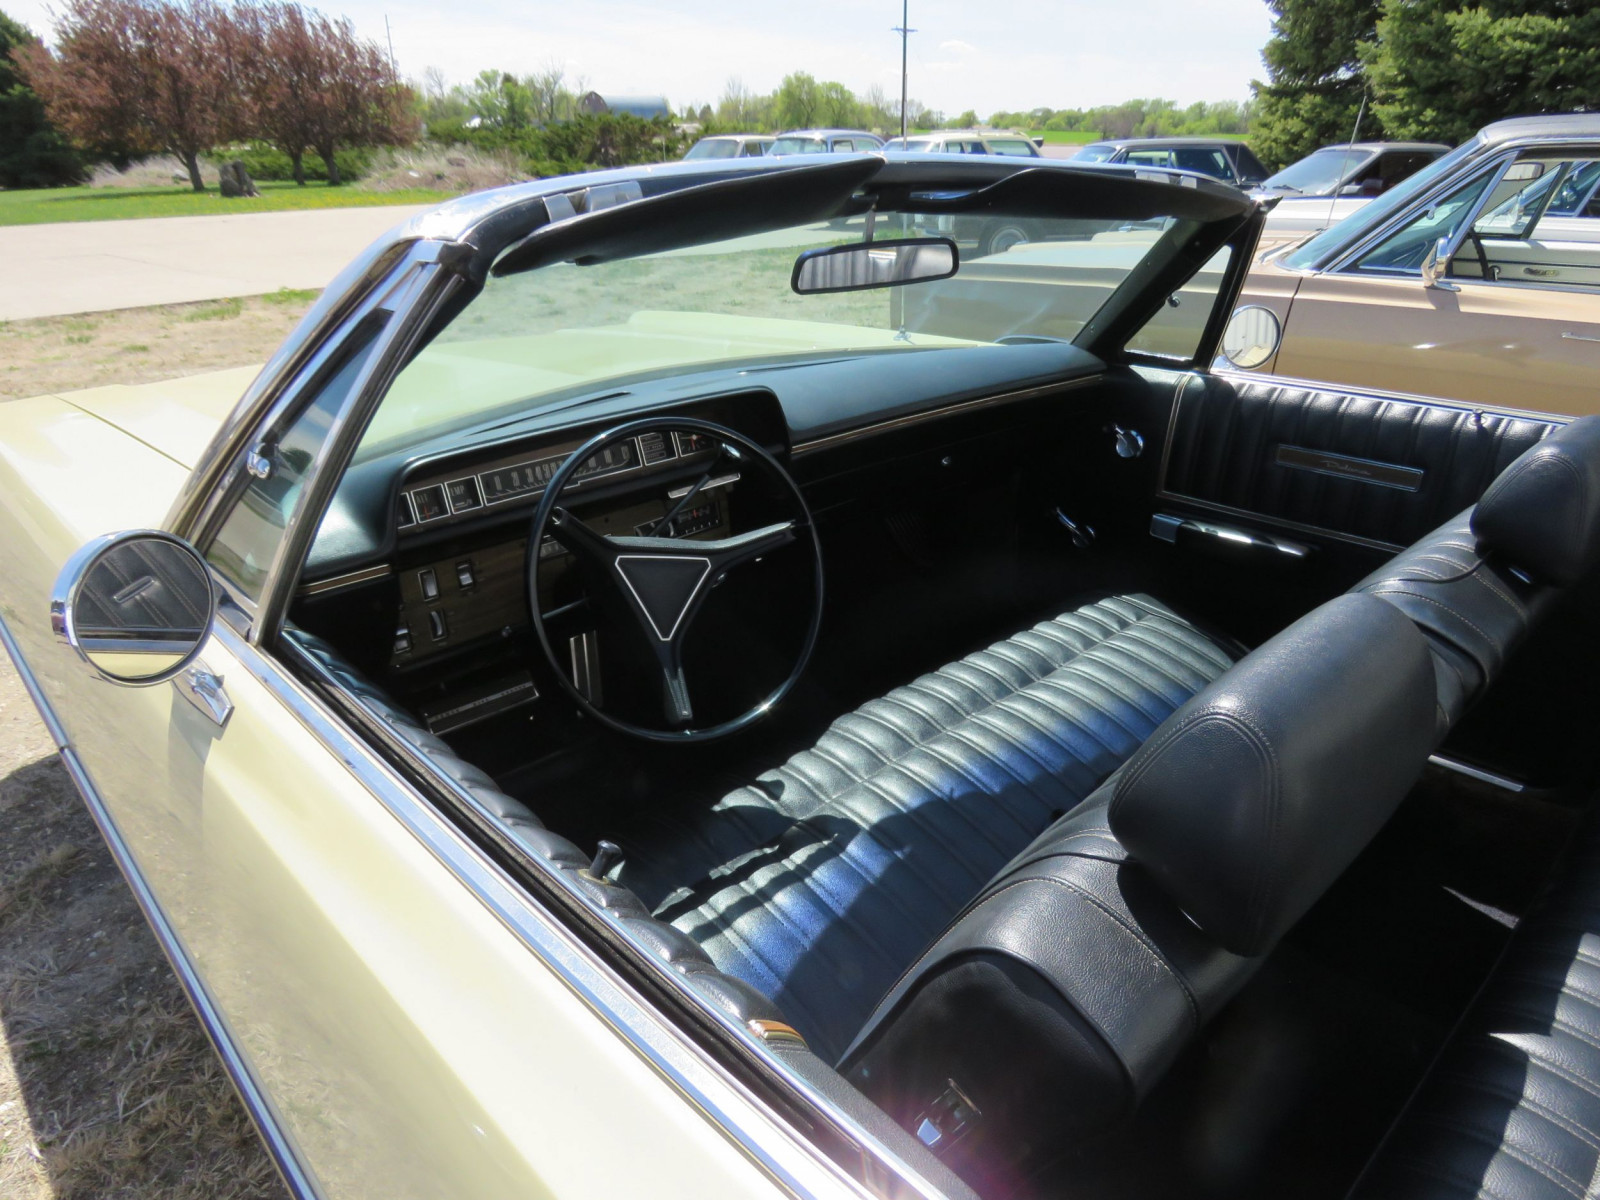 Rare 1970 Dodge Polara Convertible - Image 11